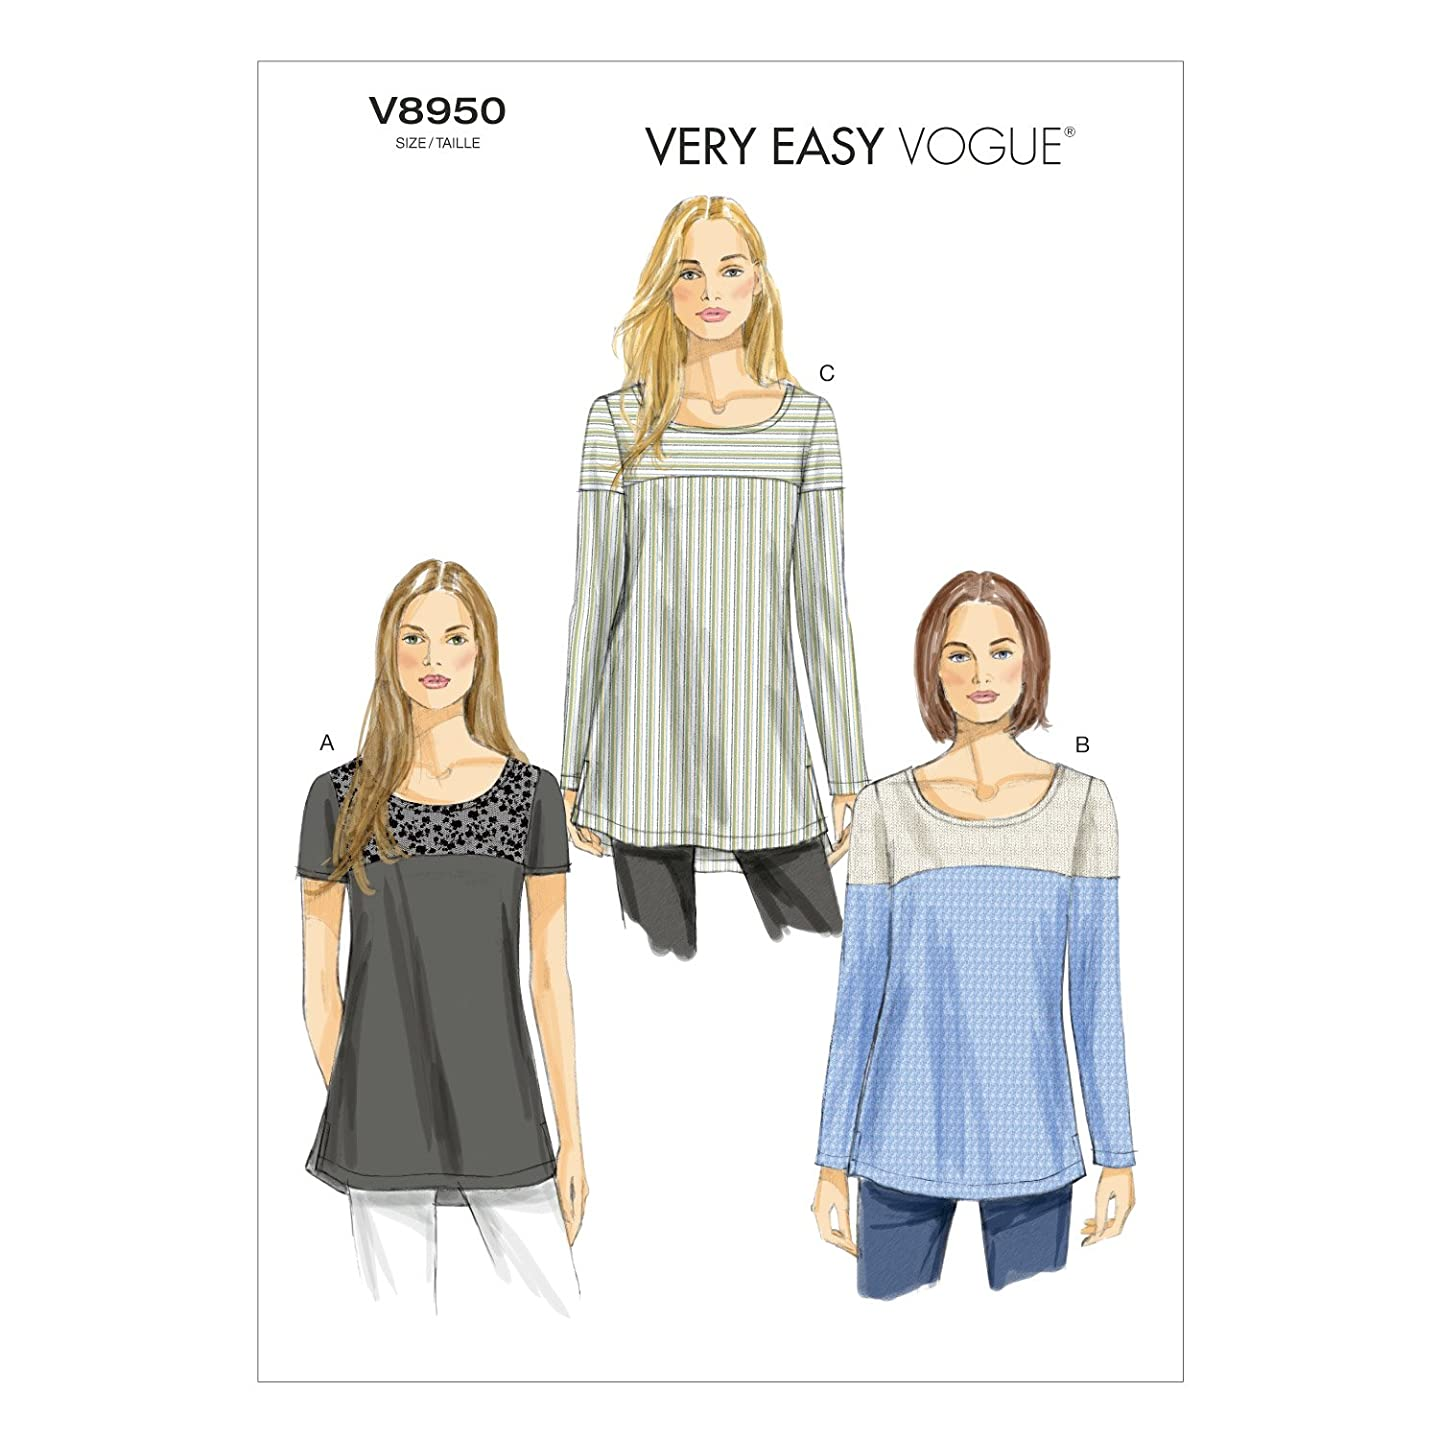 Vogue Patterns V8950 Misses' Tunic Sewing Template, Size E5